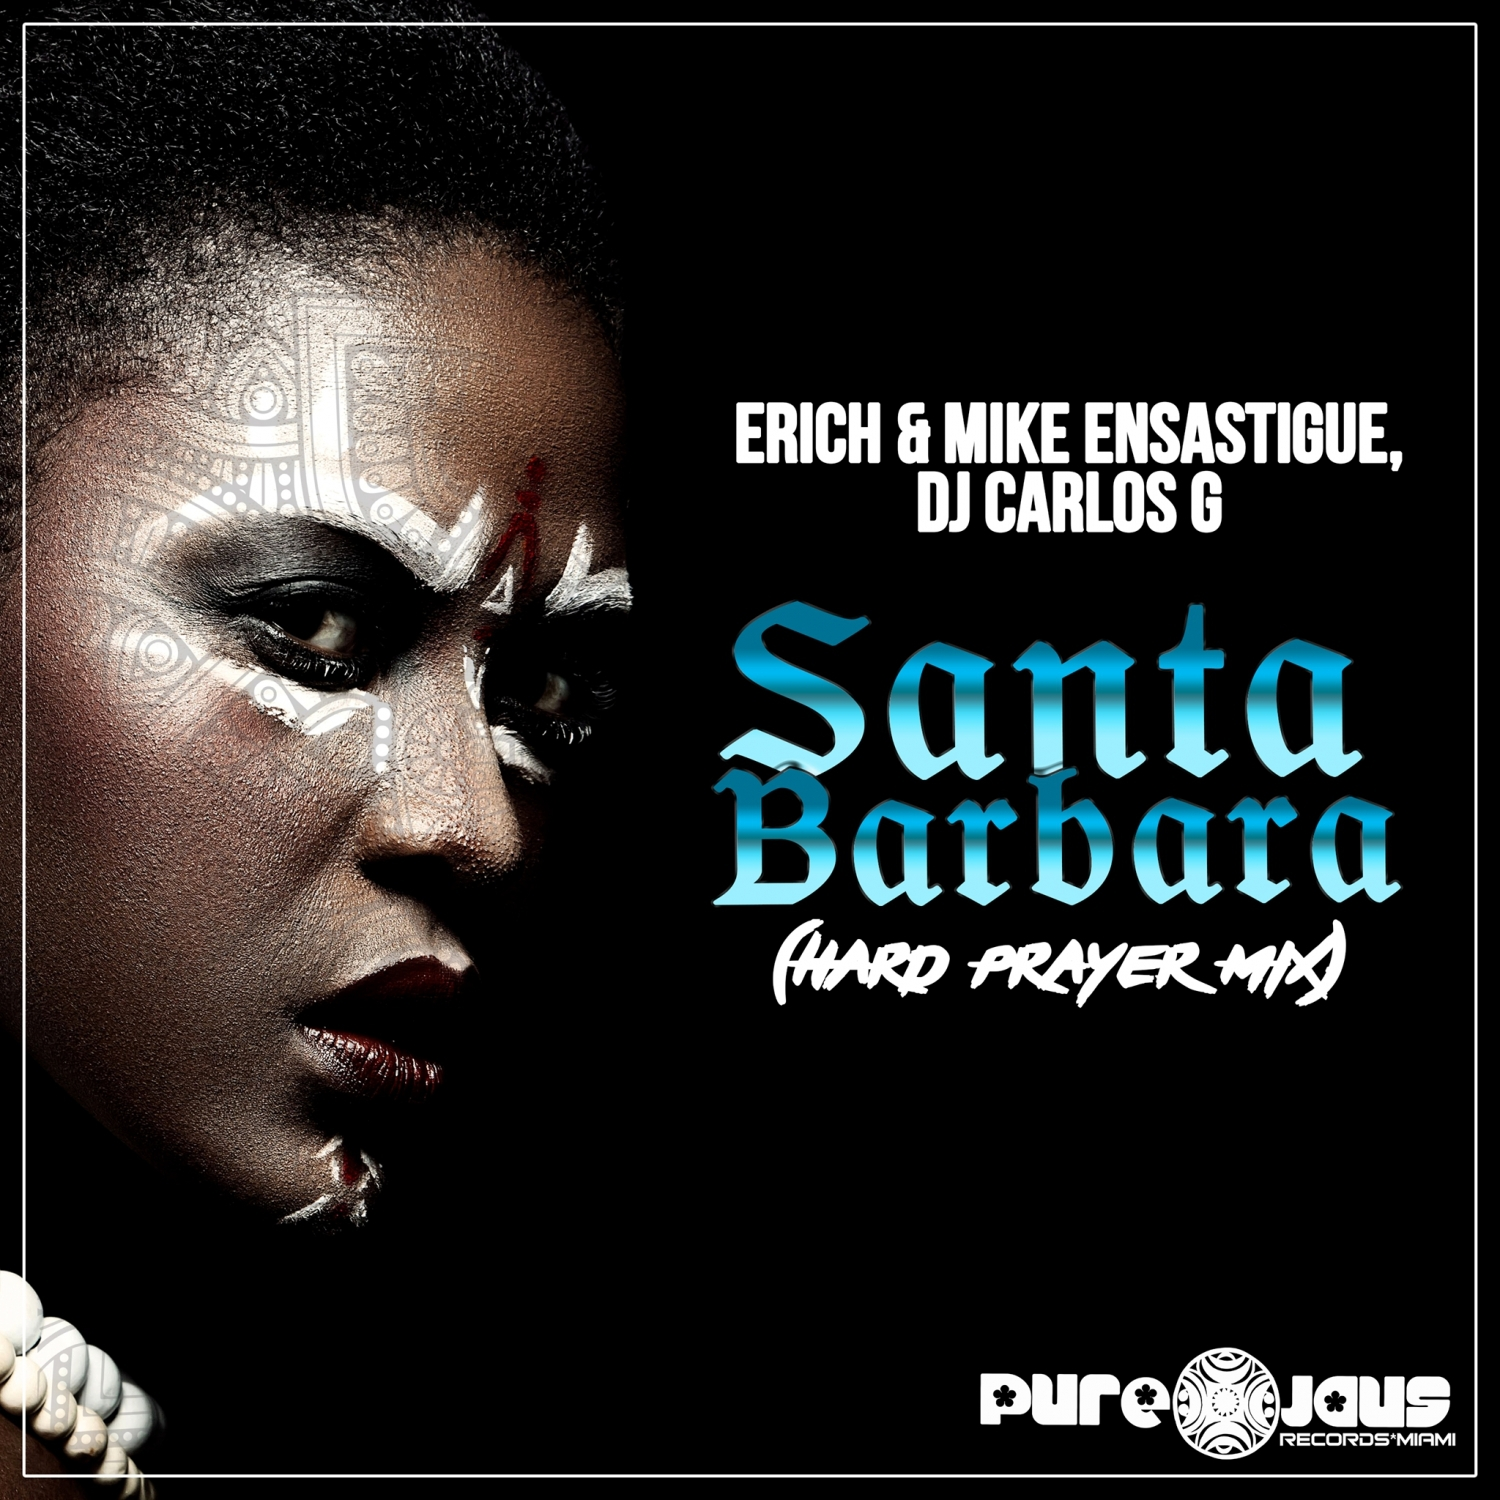 DJ CARLOS G & Erich Ensastigue & Mike Ensastigue - Santa Barbara (Hard Prayer Mix)